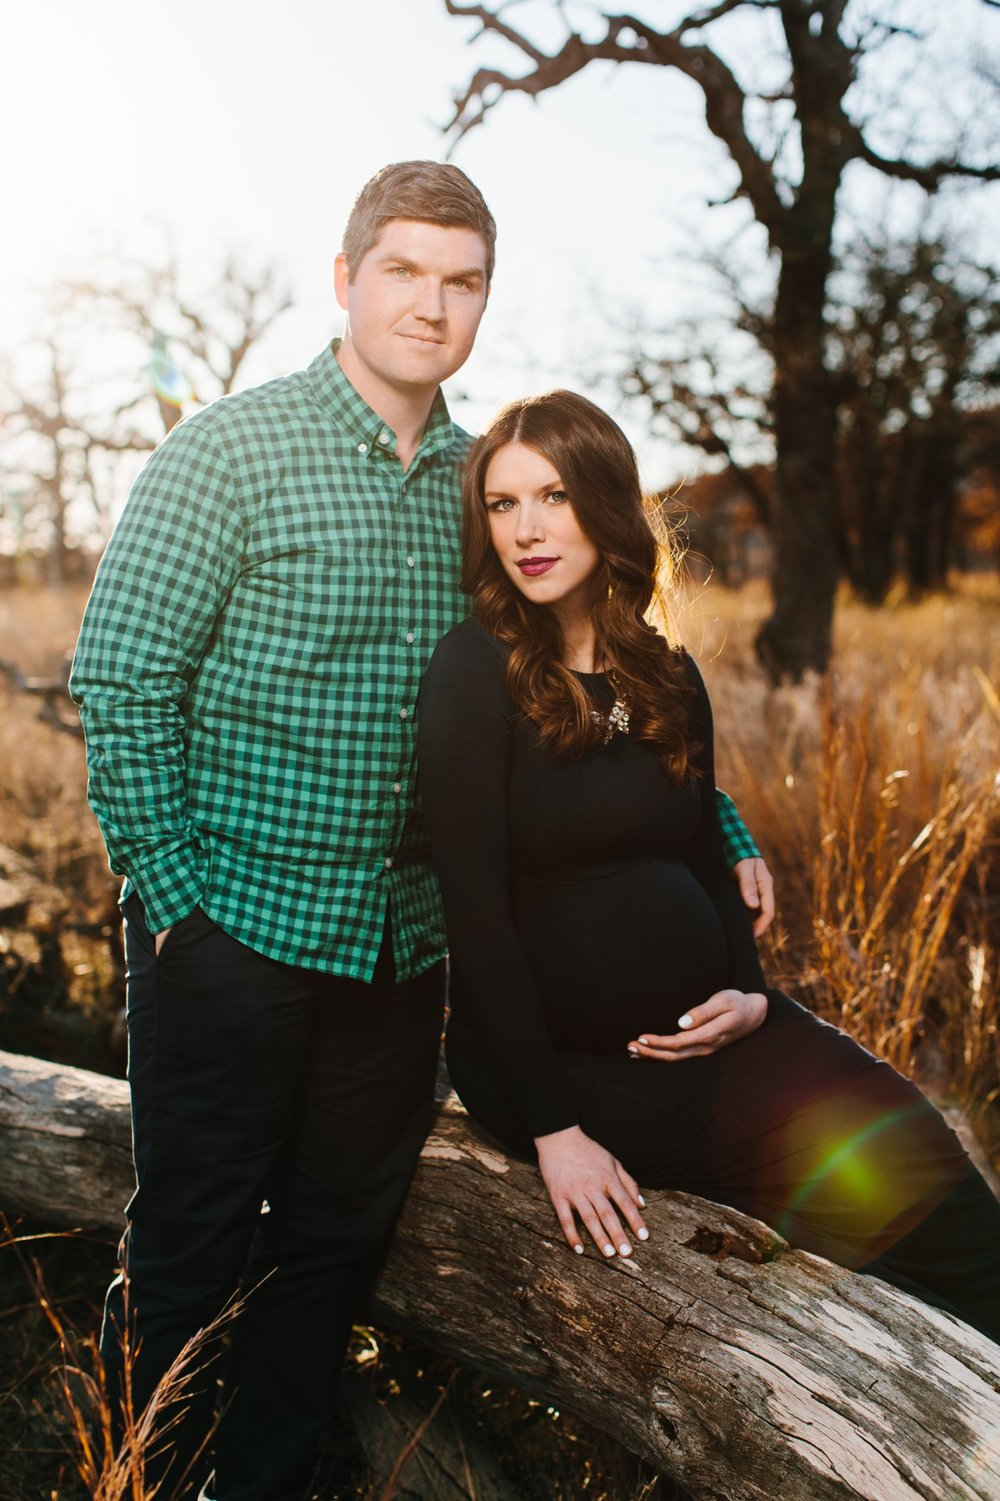 oklahoma-family-photographer-travel-outdoors-wichita-mountains-maternity.jpg